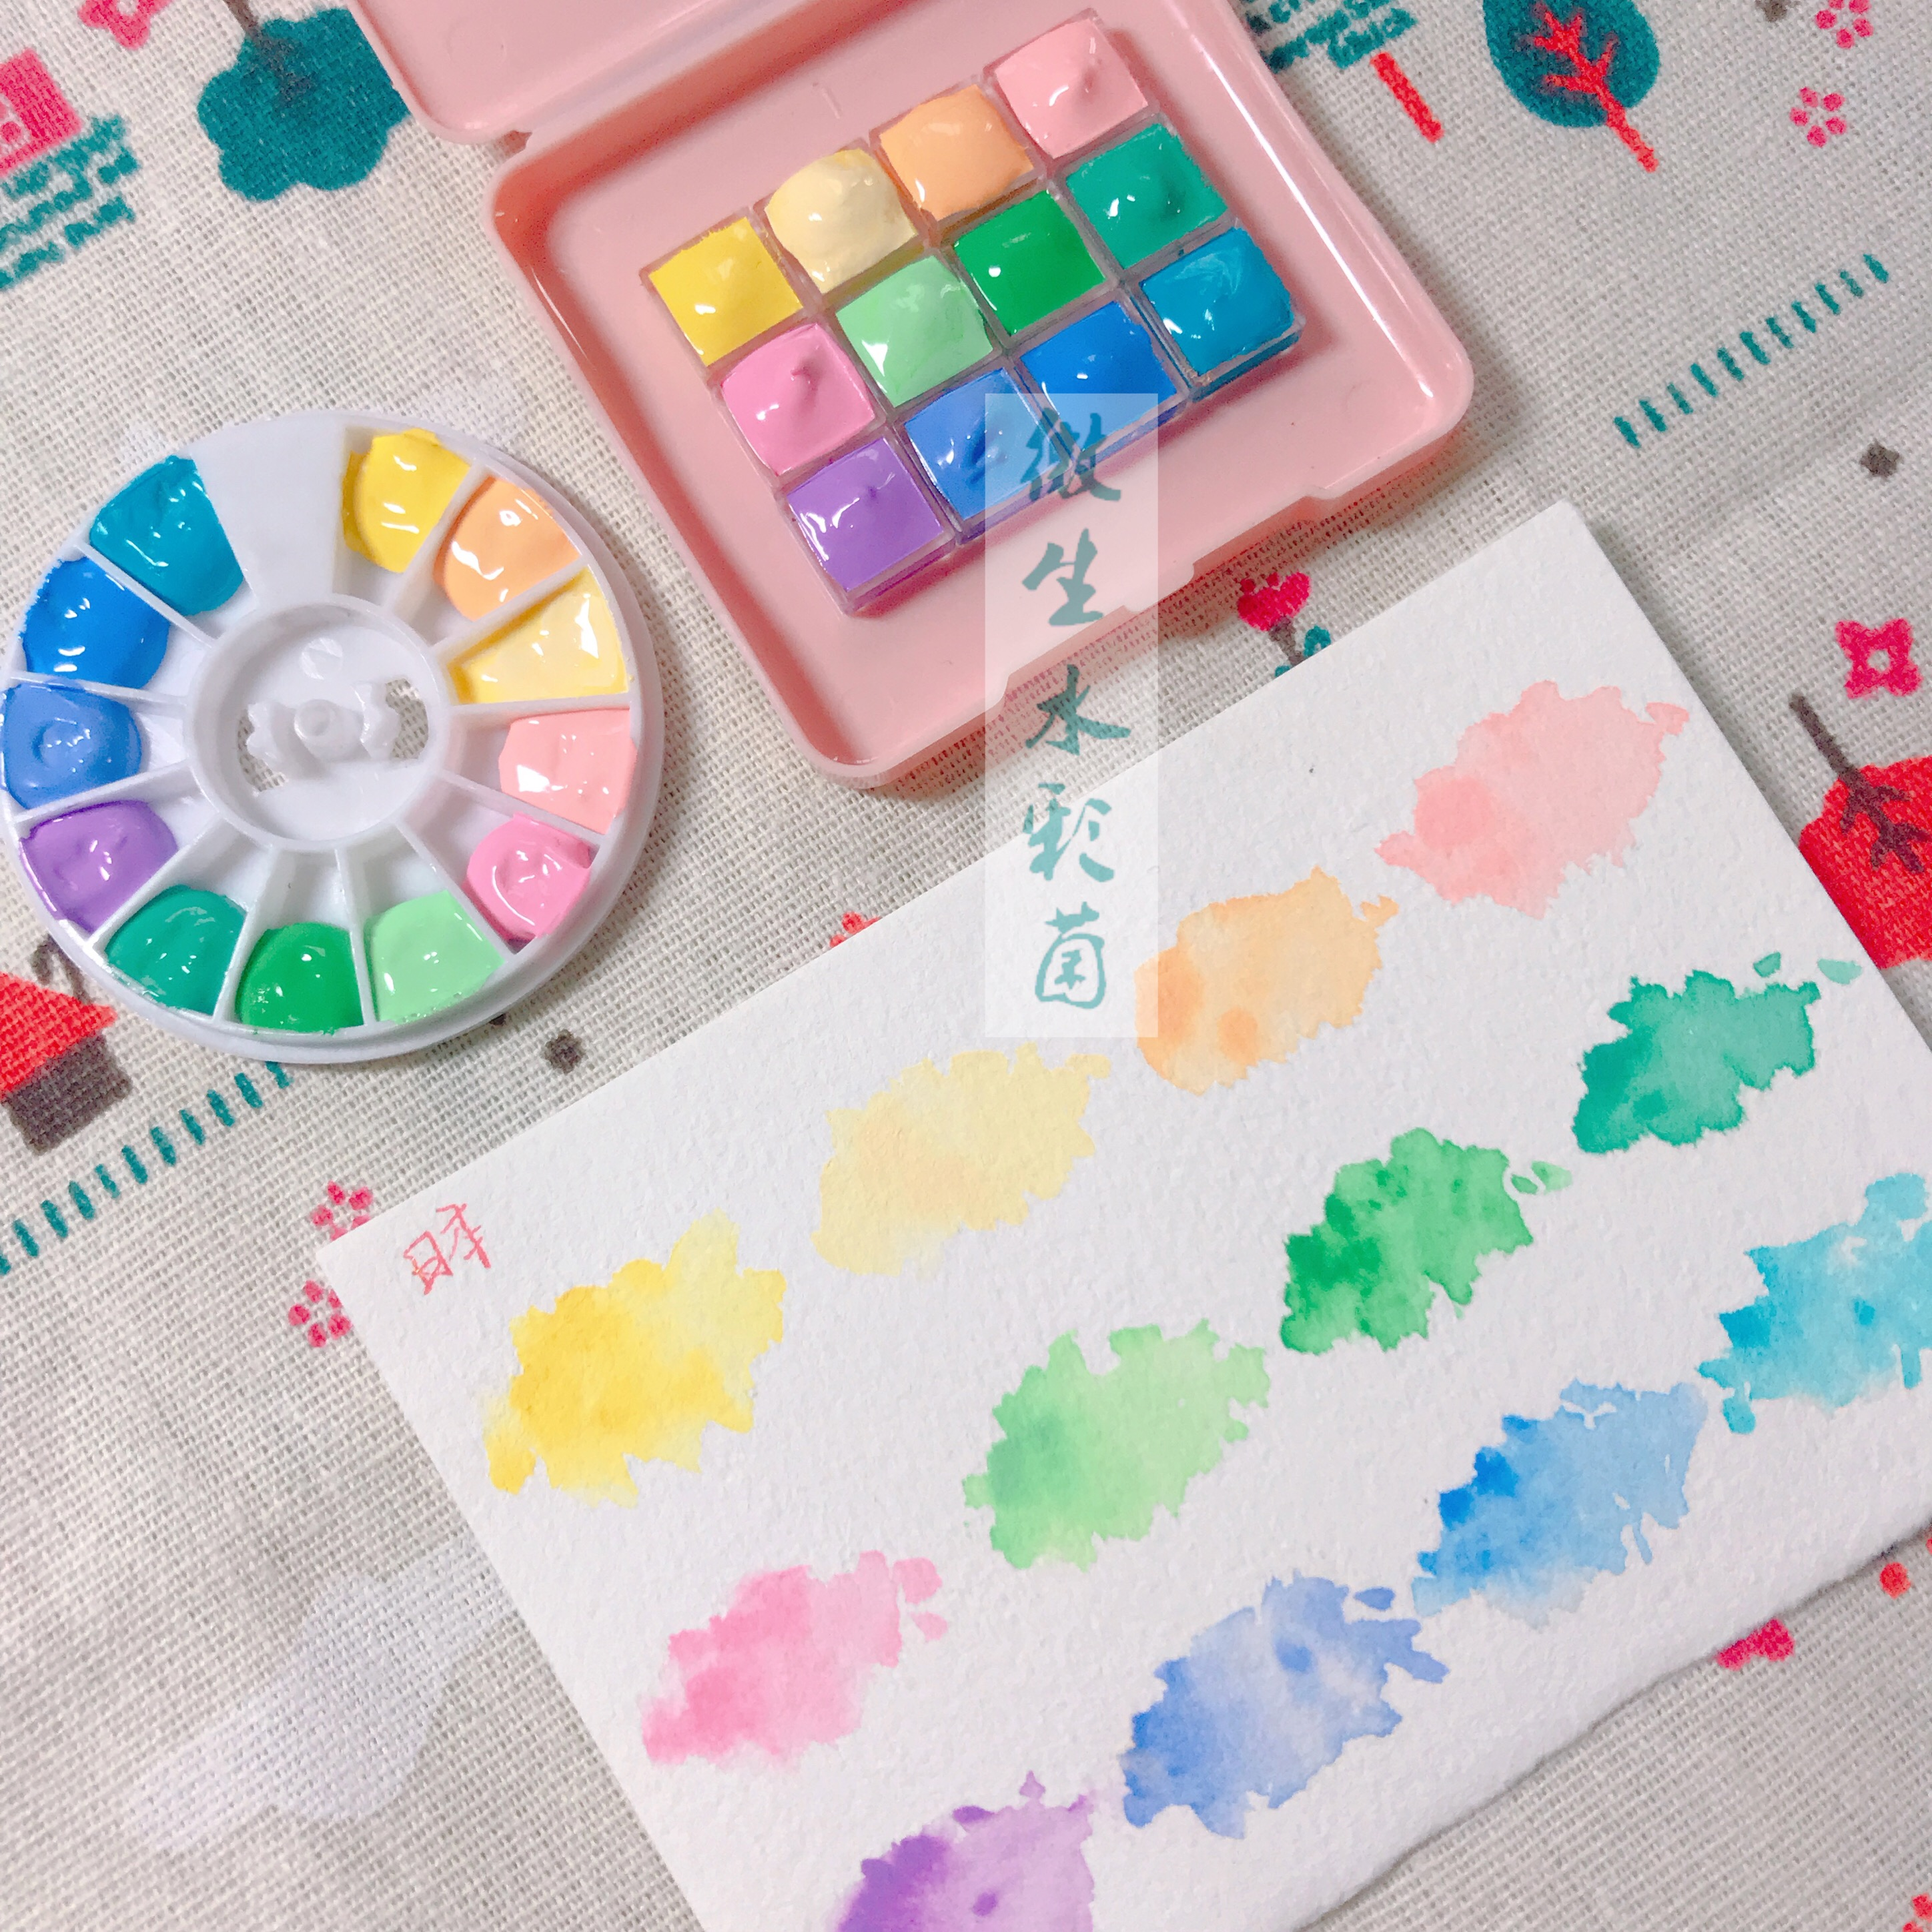 Japanese Holbein Ldefeated Watercolor Macarons Color Acuarelas Optional 12 Colors Water Color With Turquoise Color Art Supplies